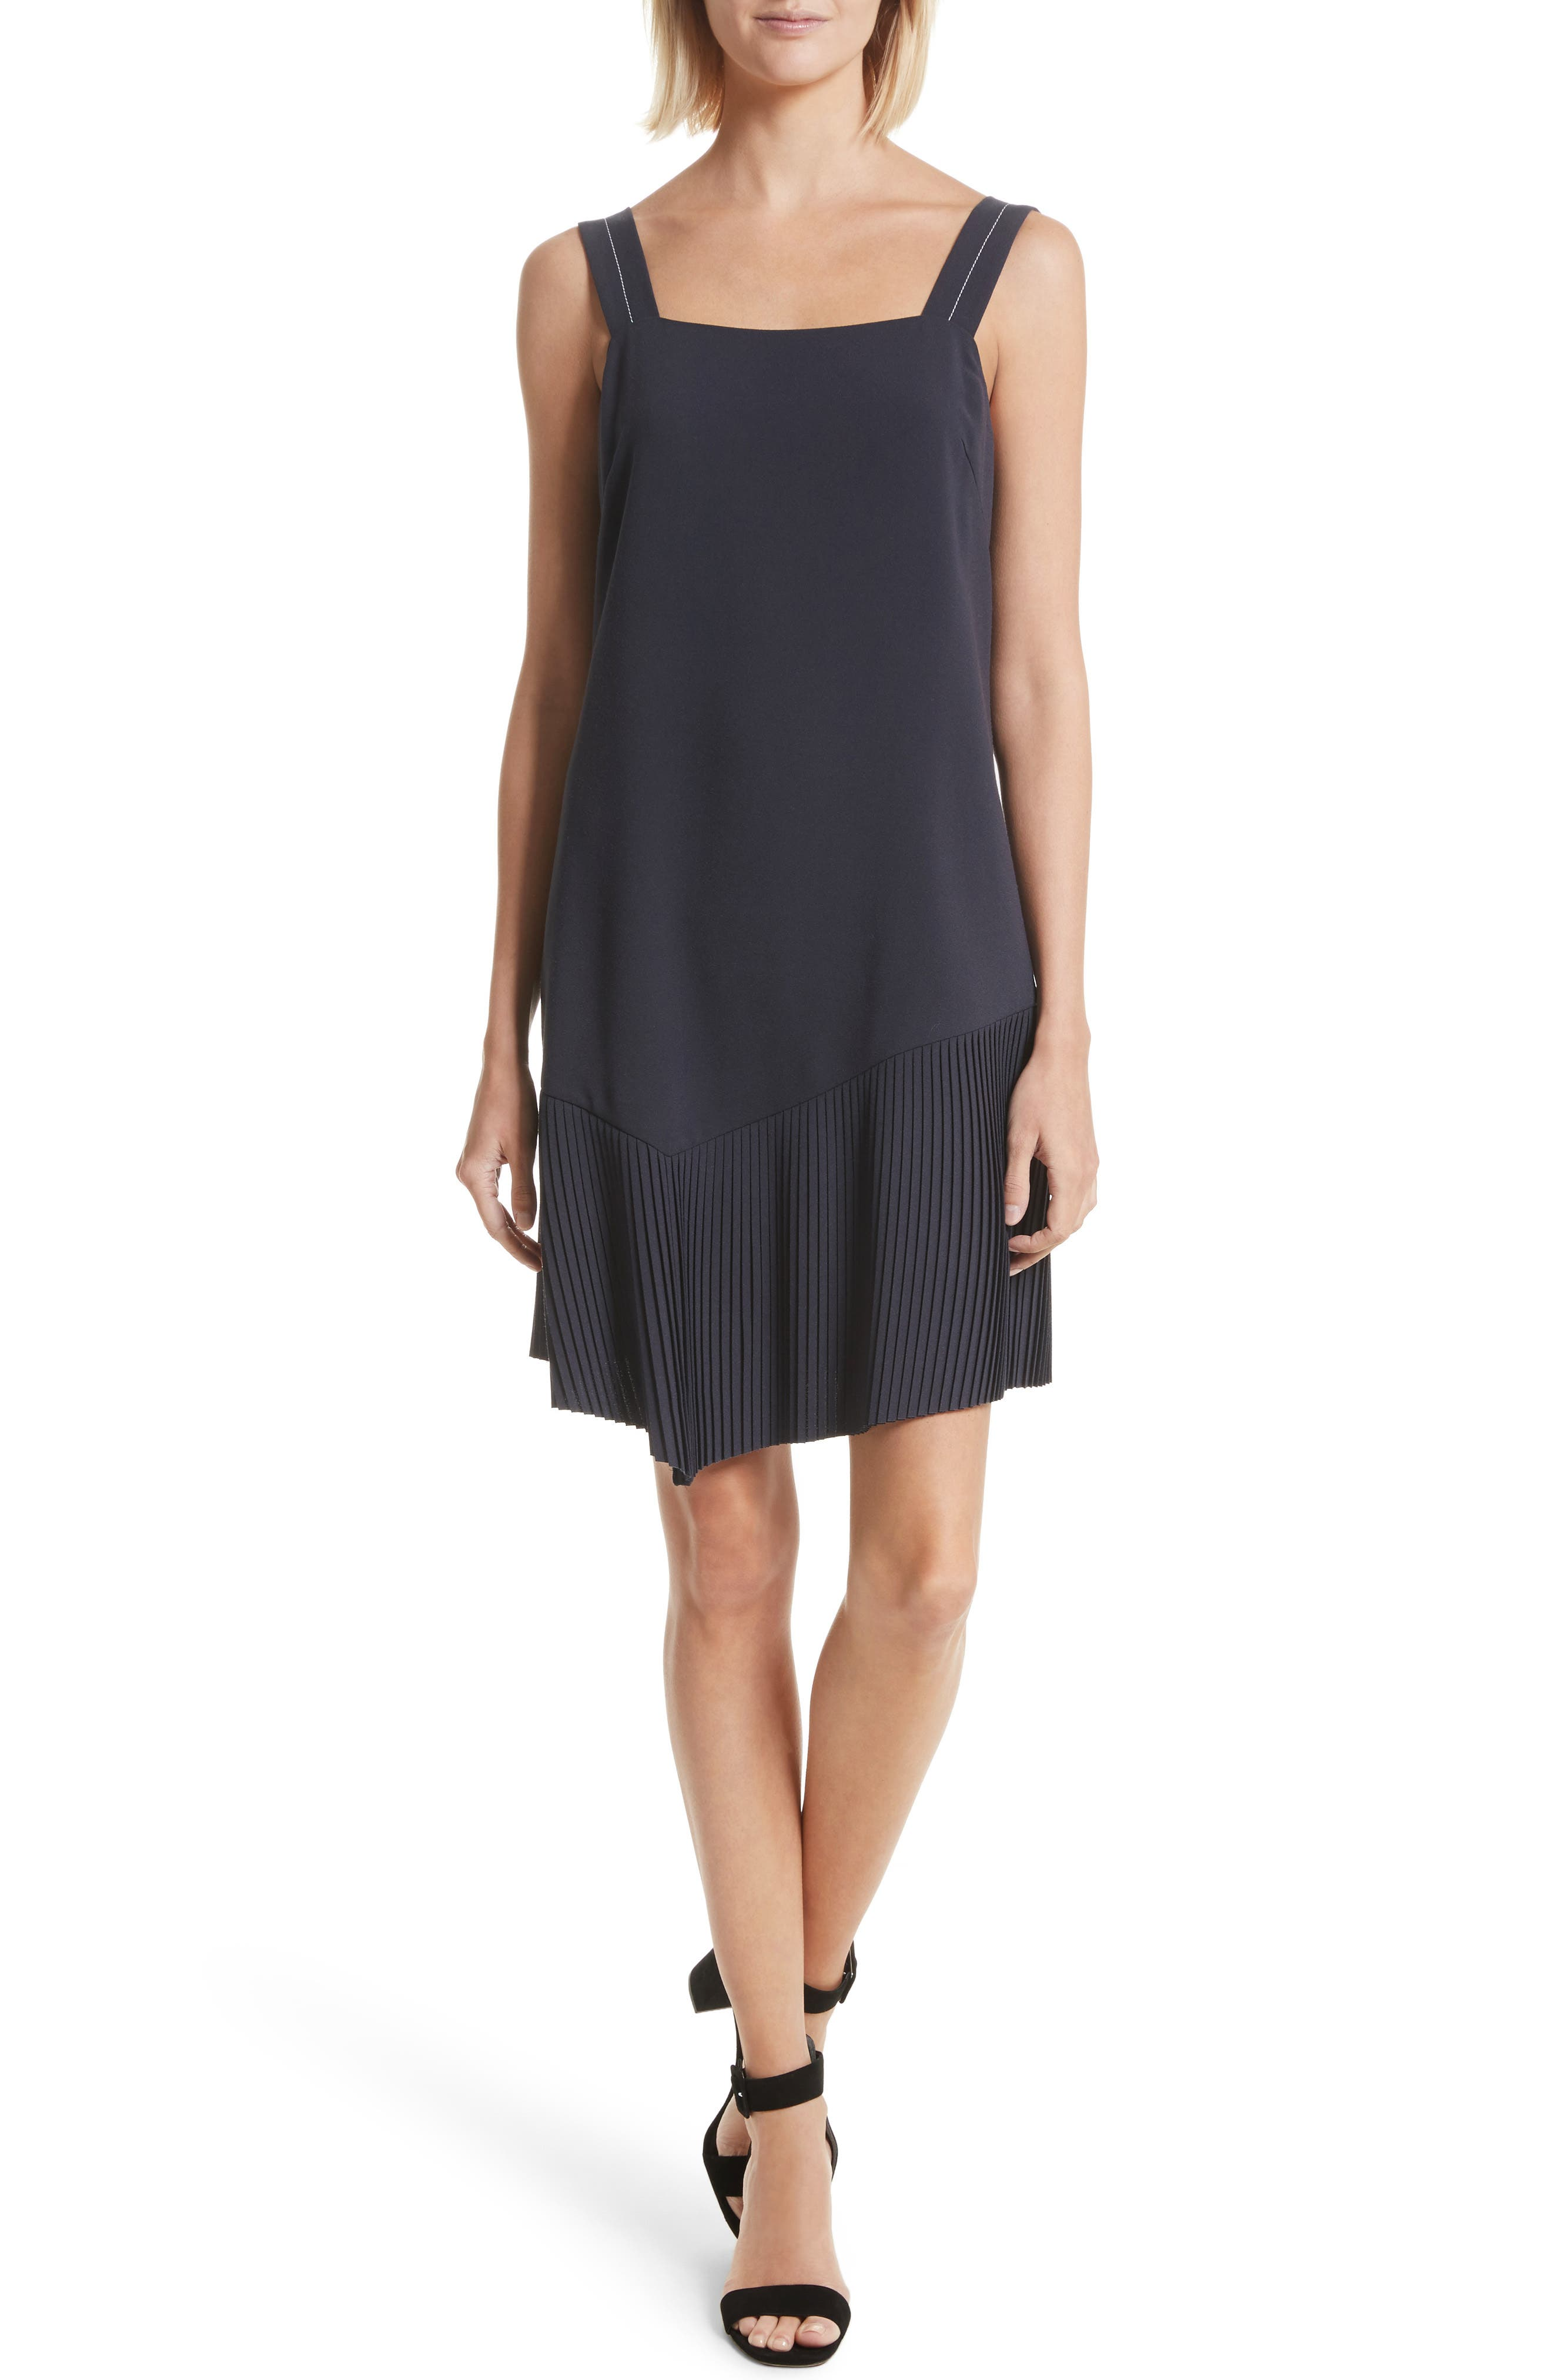 GREY Jason Wu Pleated Tank Dress